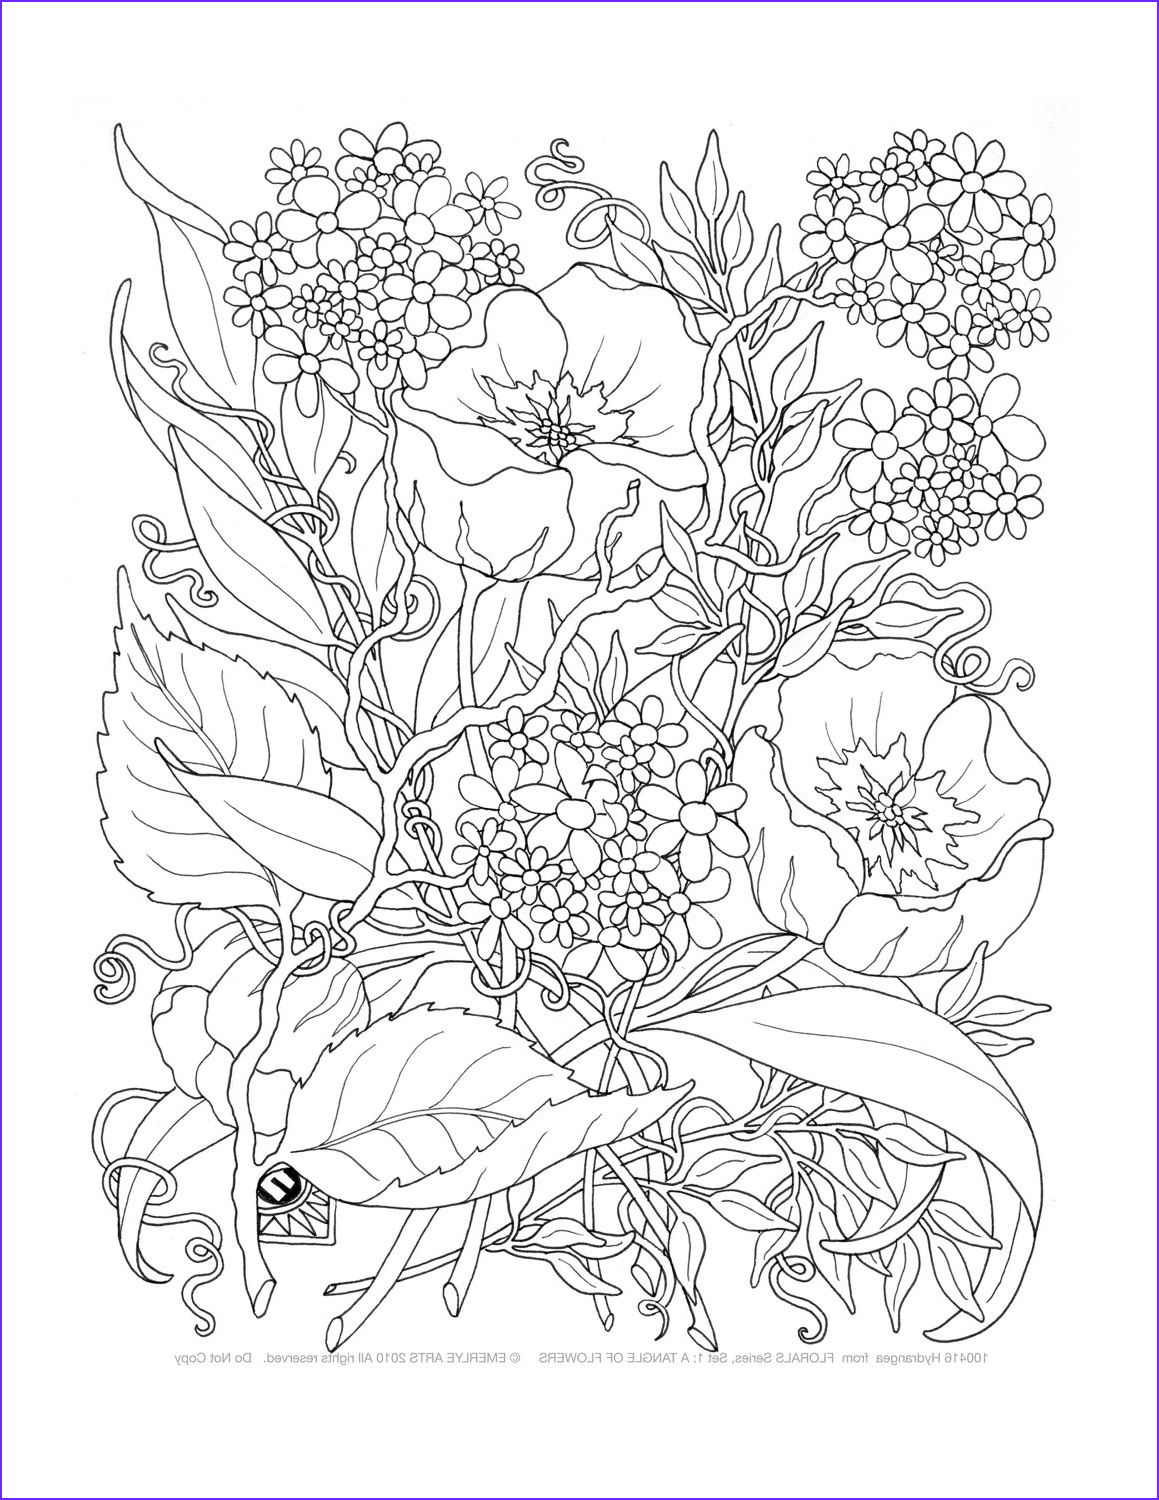 Adult Coloring Pages Flowers New Image Adult Coloring A Tangle Of Flowers Set Of 8 by Emerlyearts